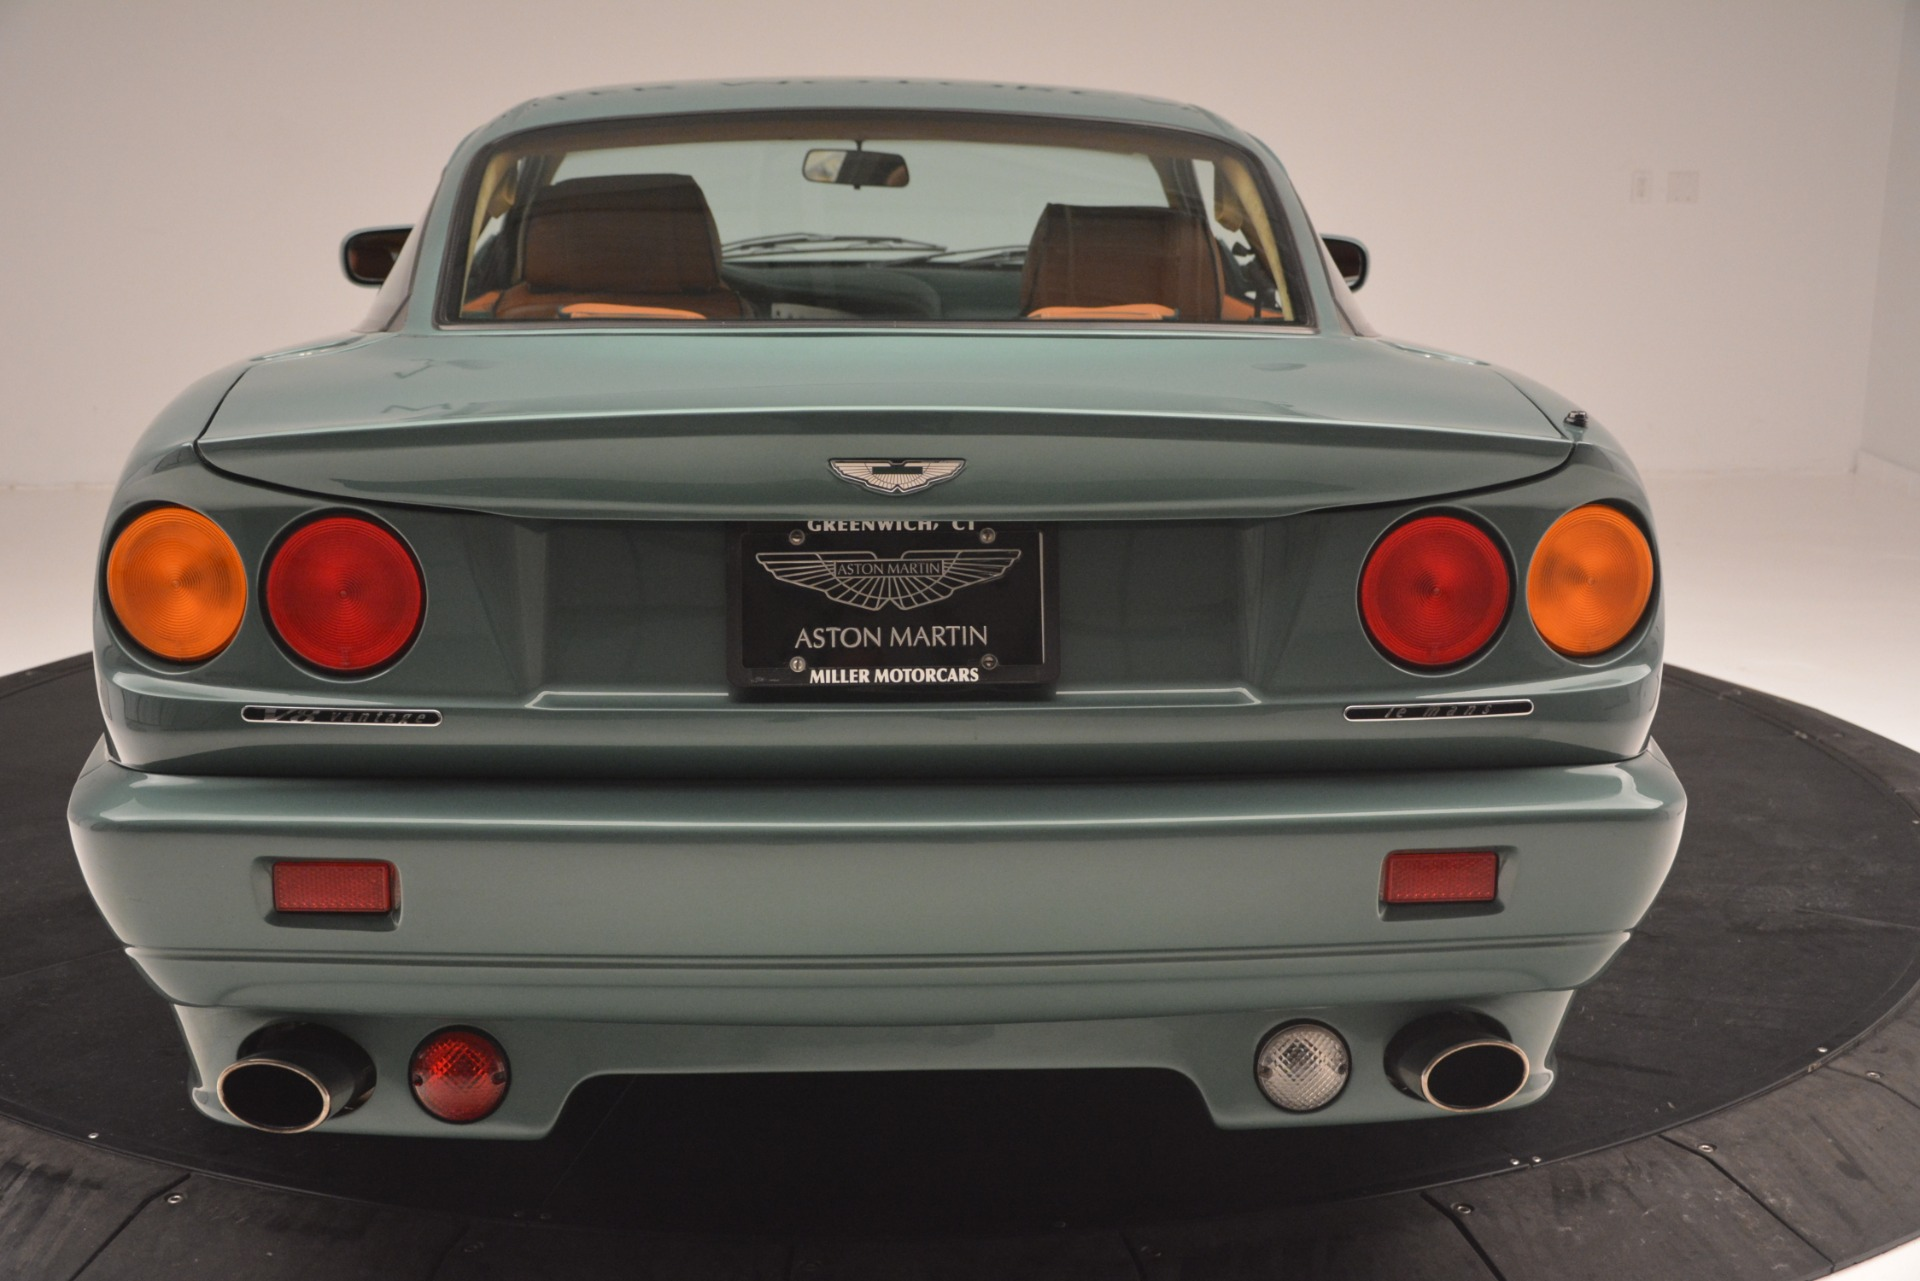 Used 1999 Aston Martin V8 Vantage Le Mans V600 Coupe For Sale In Westport, CT 2789_p42